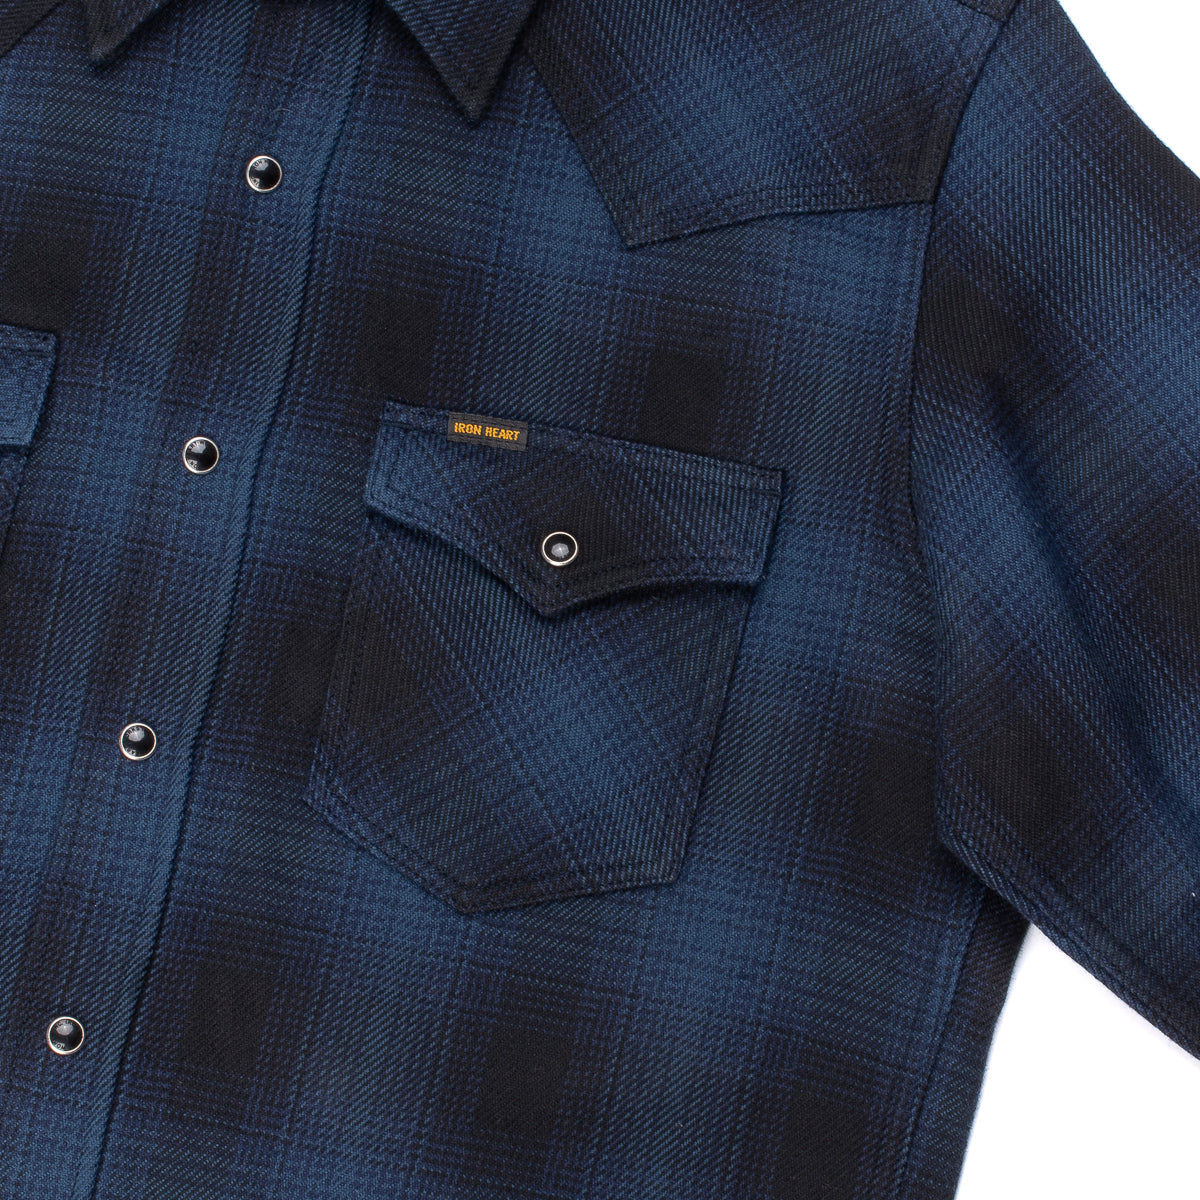 IHSH-264 - Flannel Ombré Check Western Shirt Navy/Black